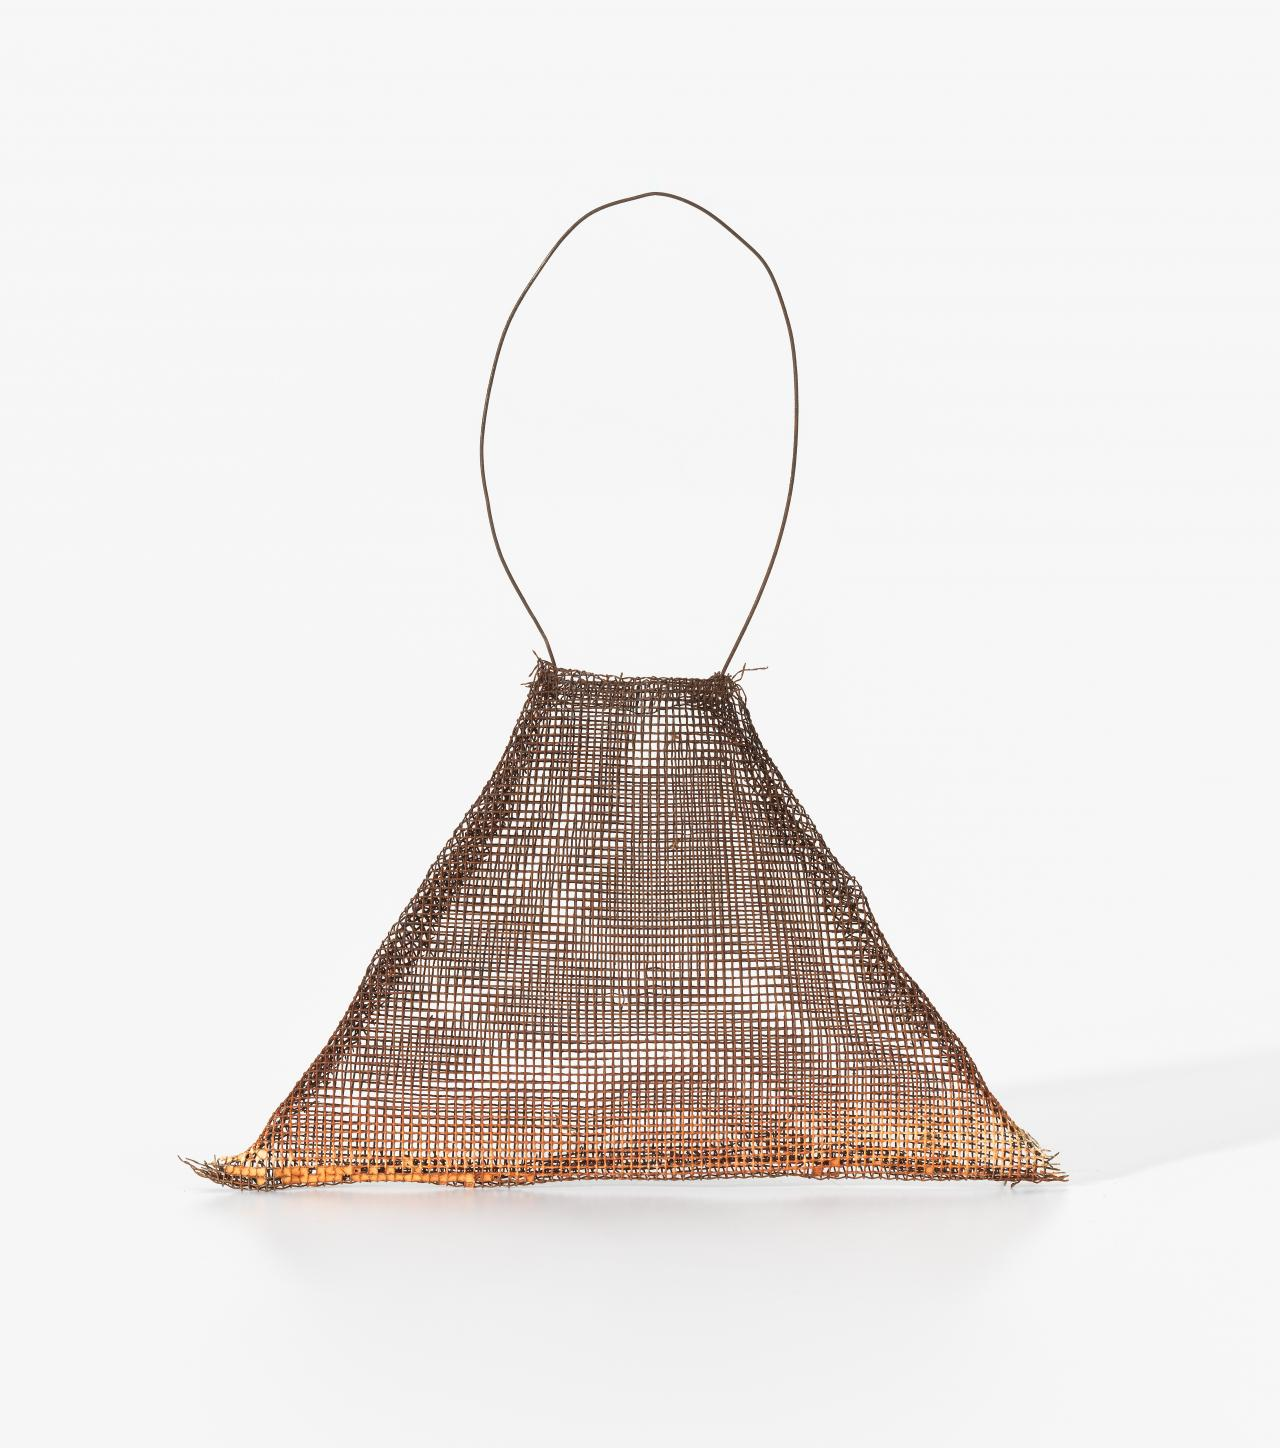 Narrbong (String bag)